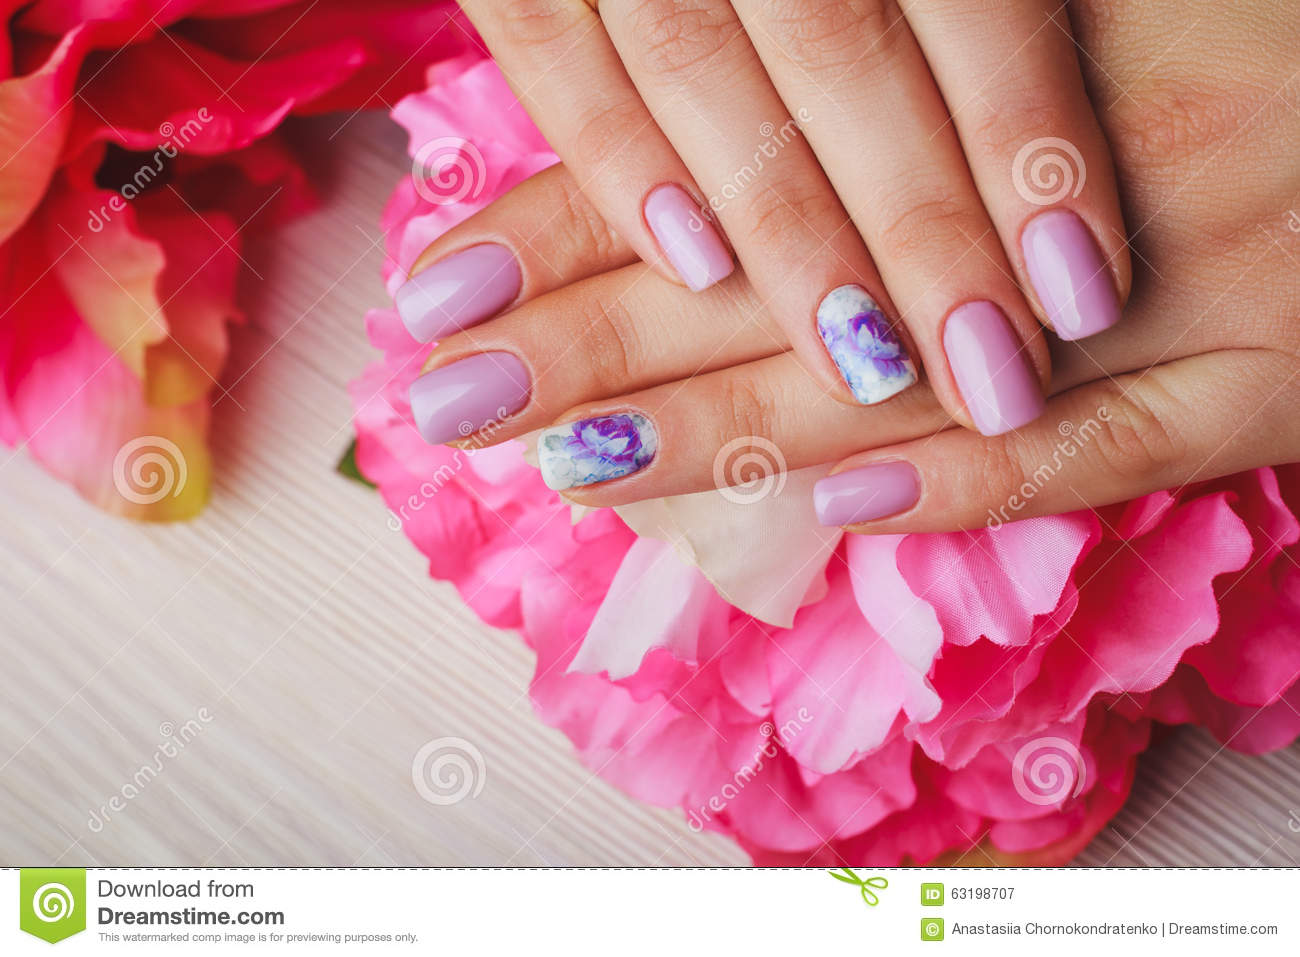 Lilac Nail Art With Printed Flowers On Light Background Stock Image